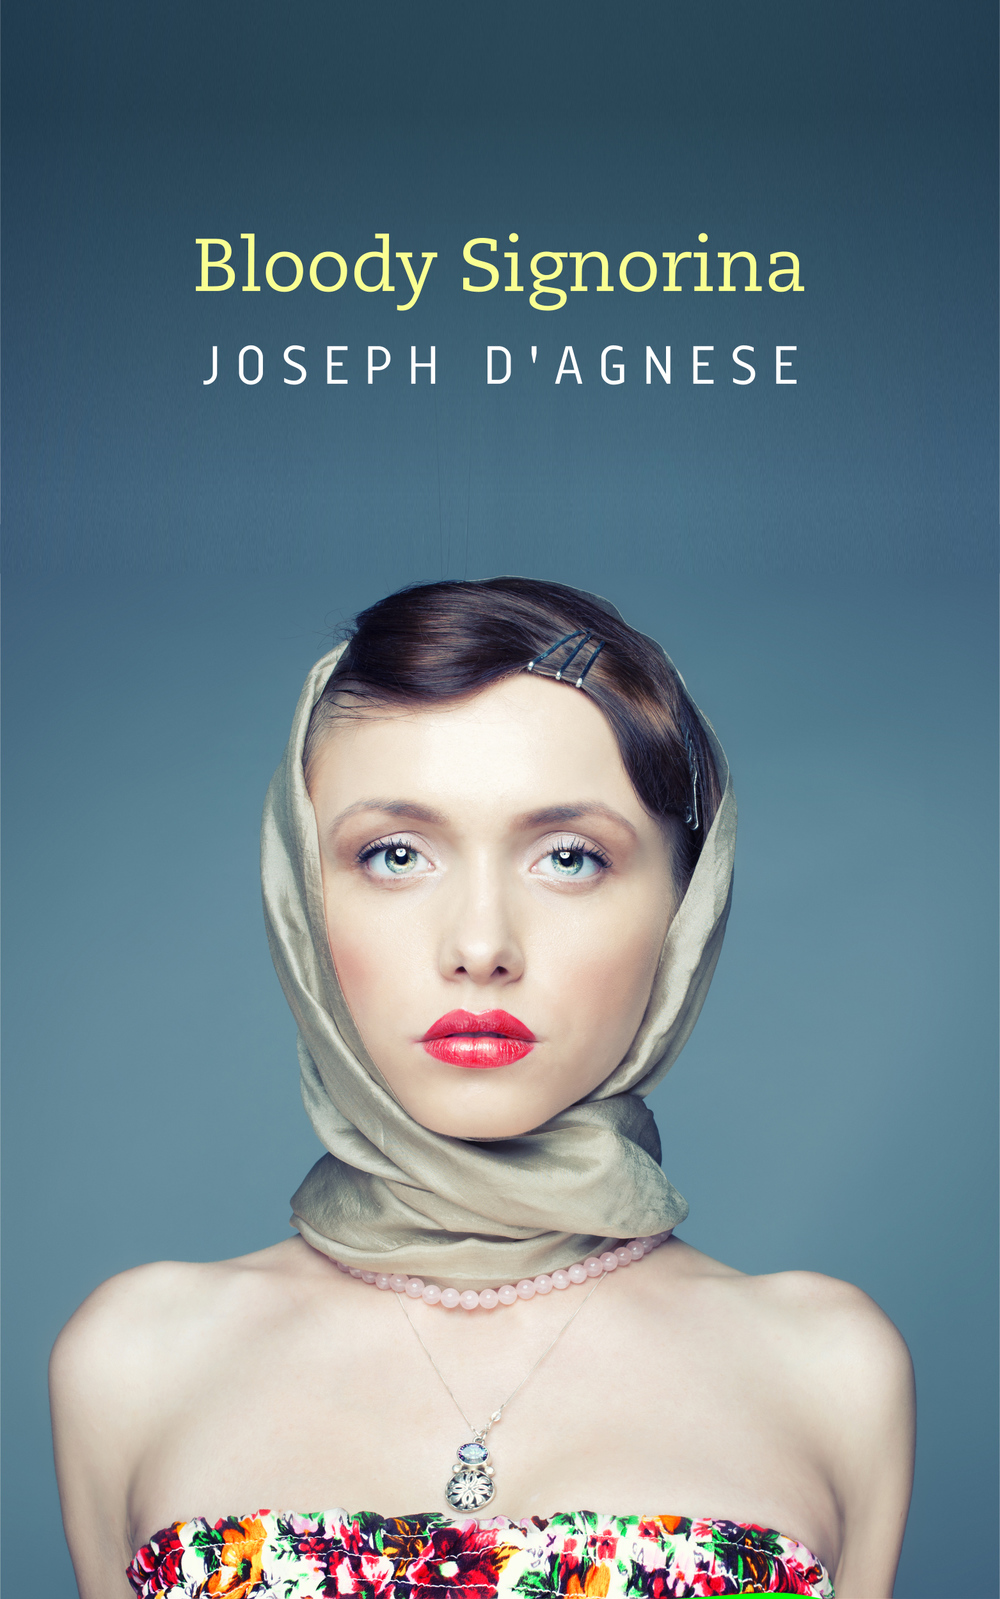 Bloody Signorina, a short story set in Rome, Italy, by Joseph D'Agnese